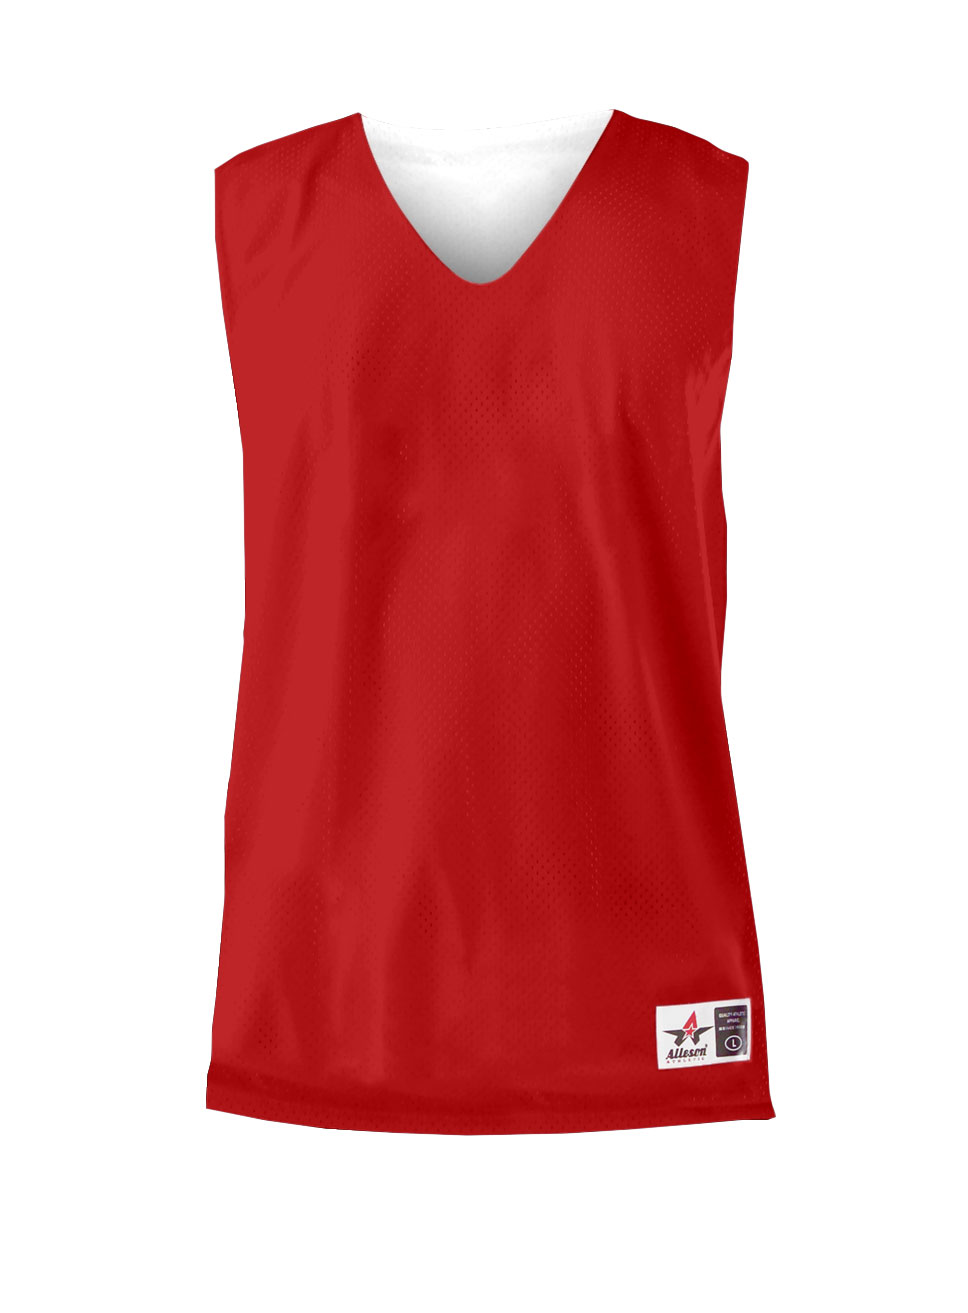 Custom Adult Reversible Mesh Tank Top By Alleson